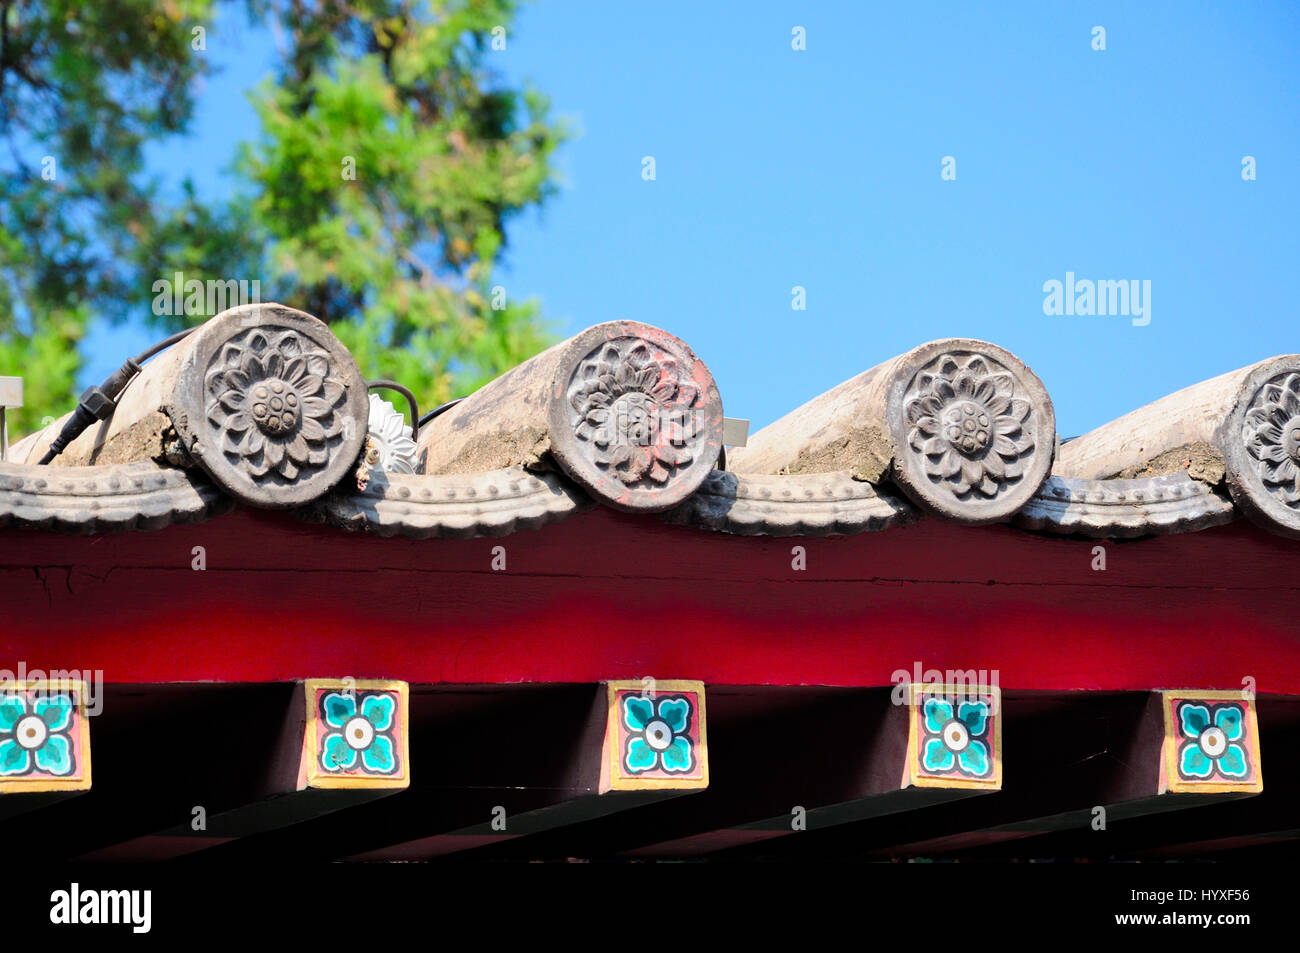 Lotus flower architecture stock photos lotus flower architecture lotus flower architectural details on a chinese style roof at xiangshan temples at longmen grottoes in izmirmasajfo